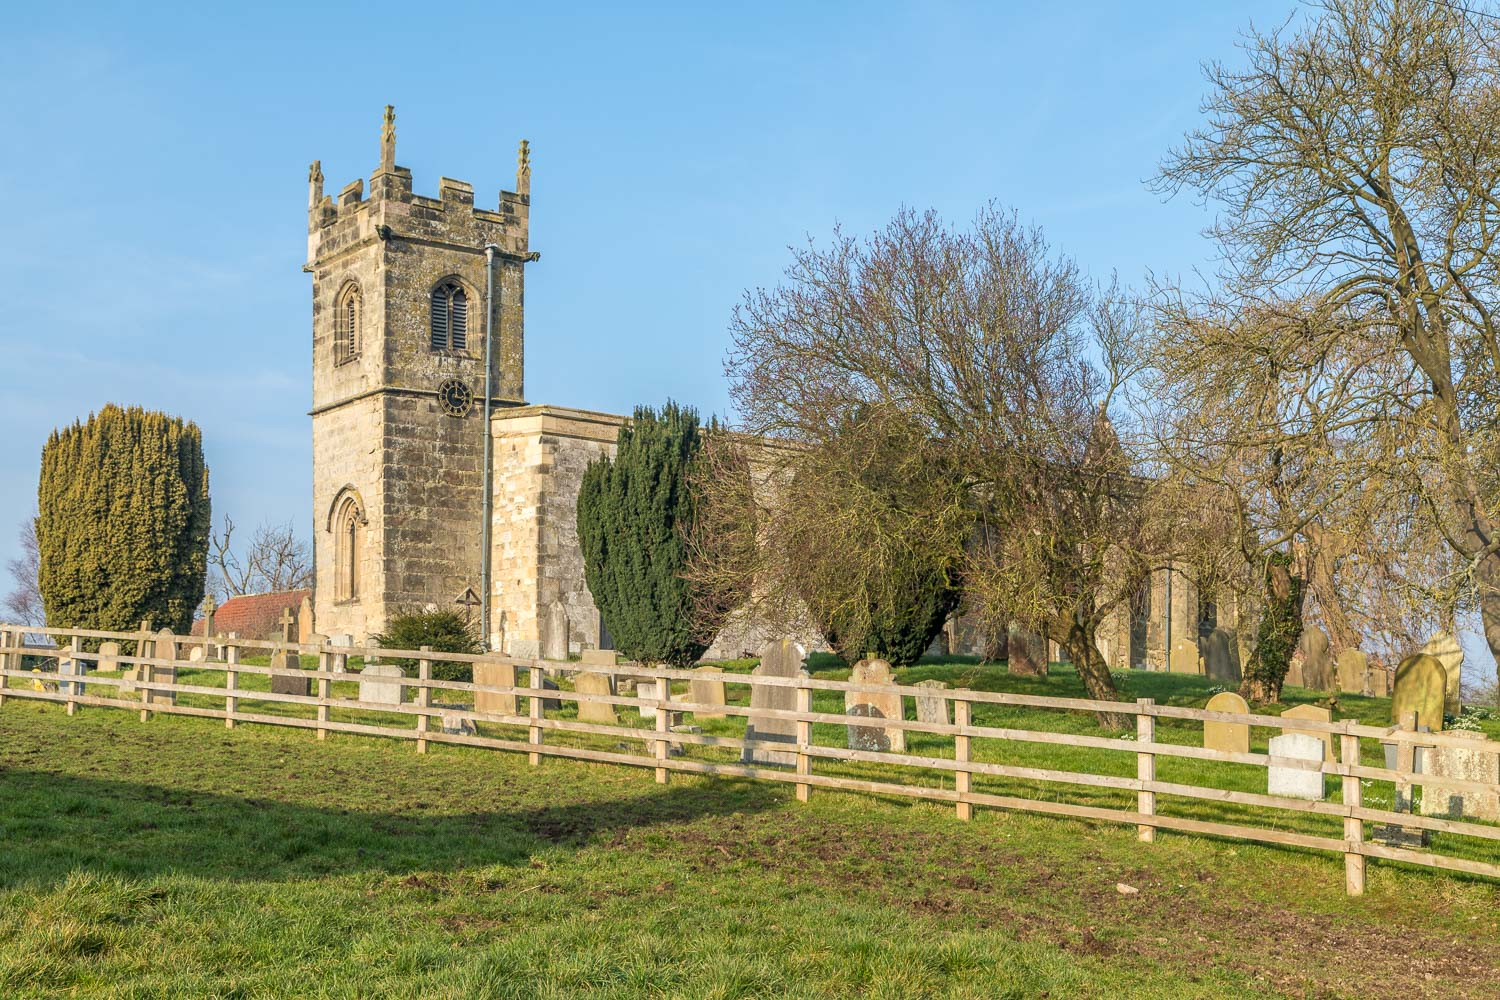 Chalkland Way, St Andrew's Church Bugthorpe